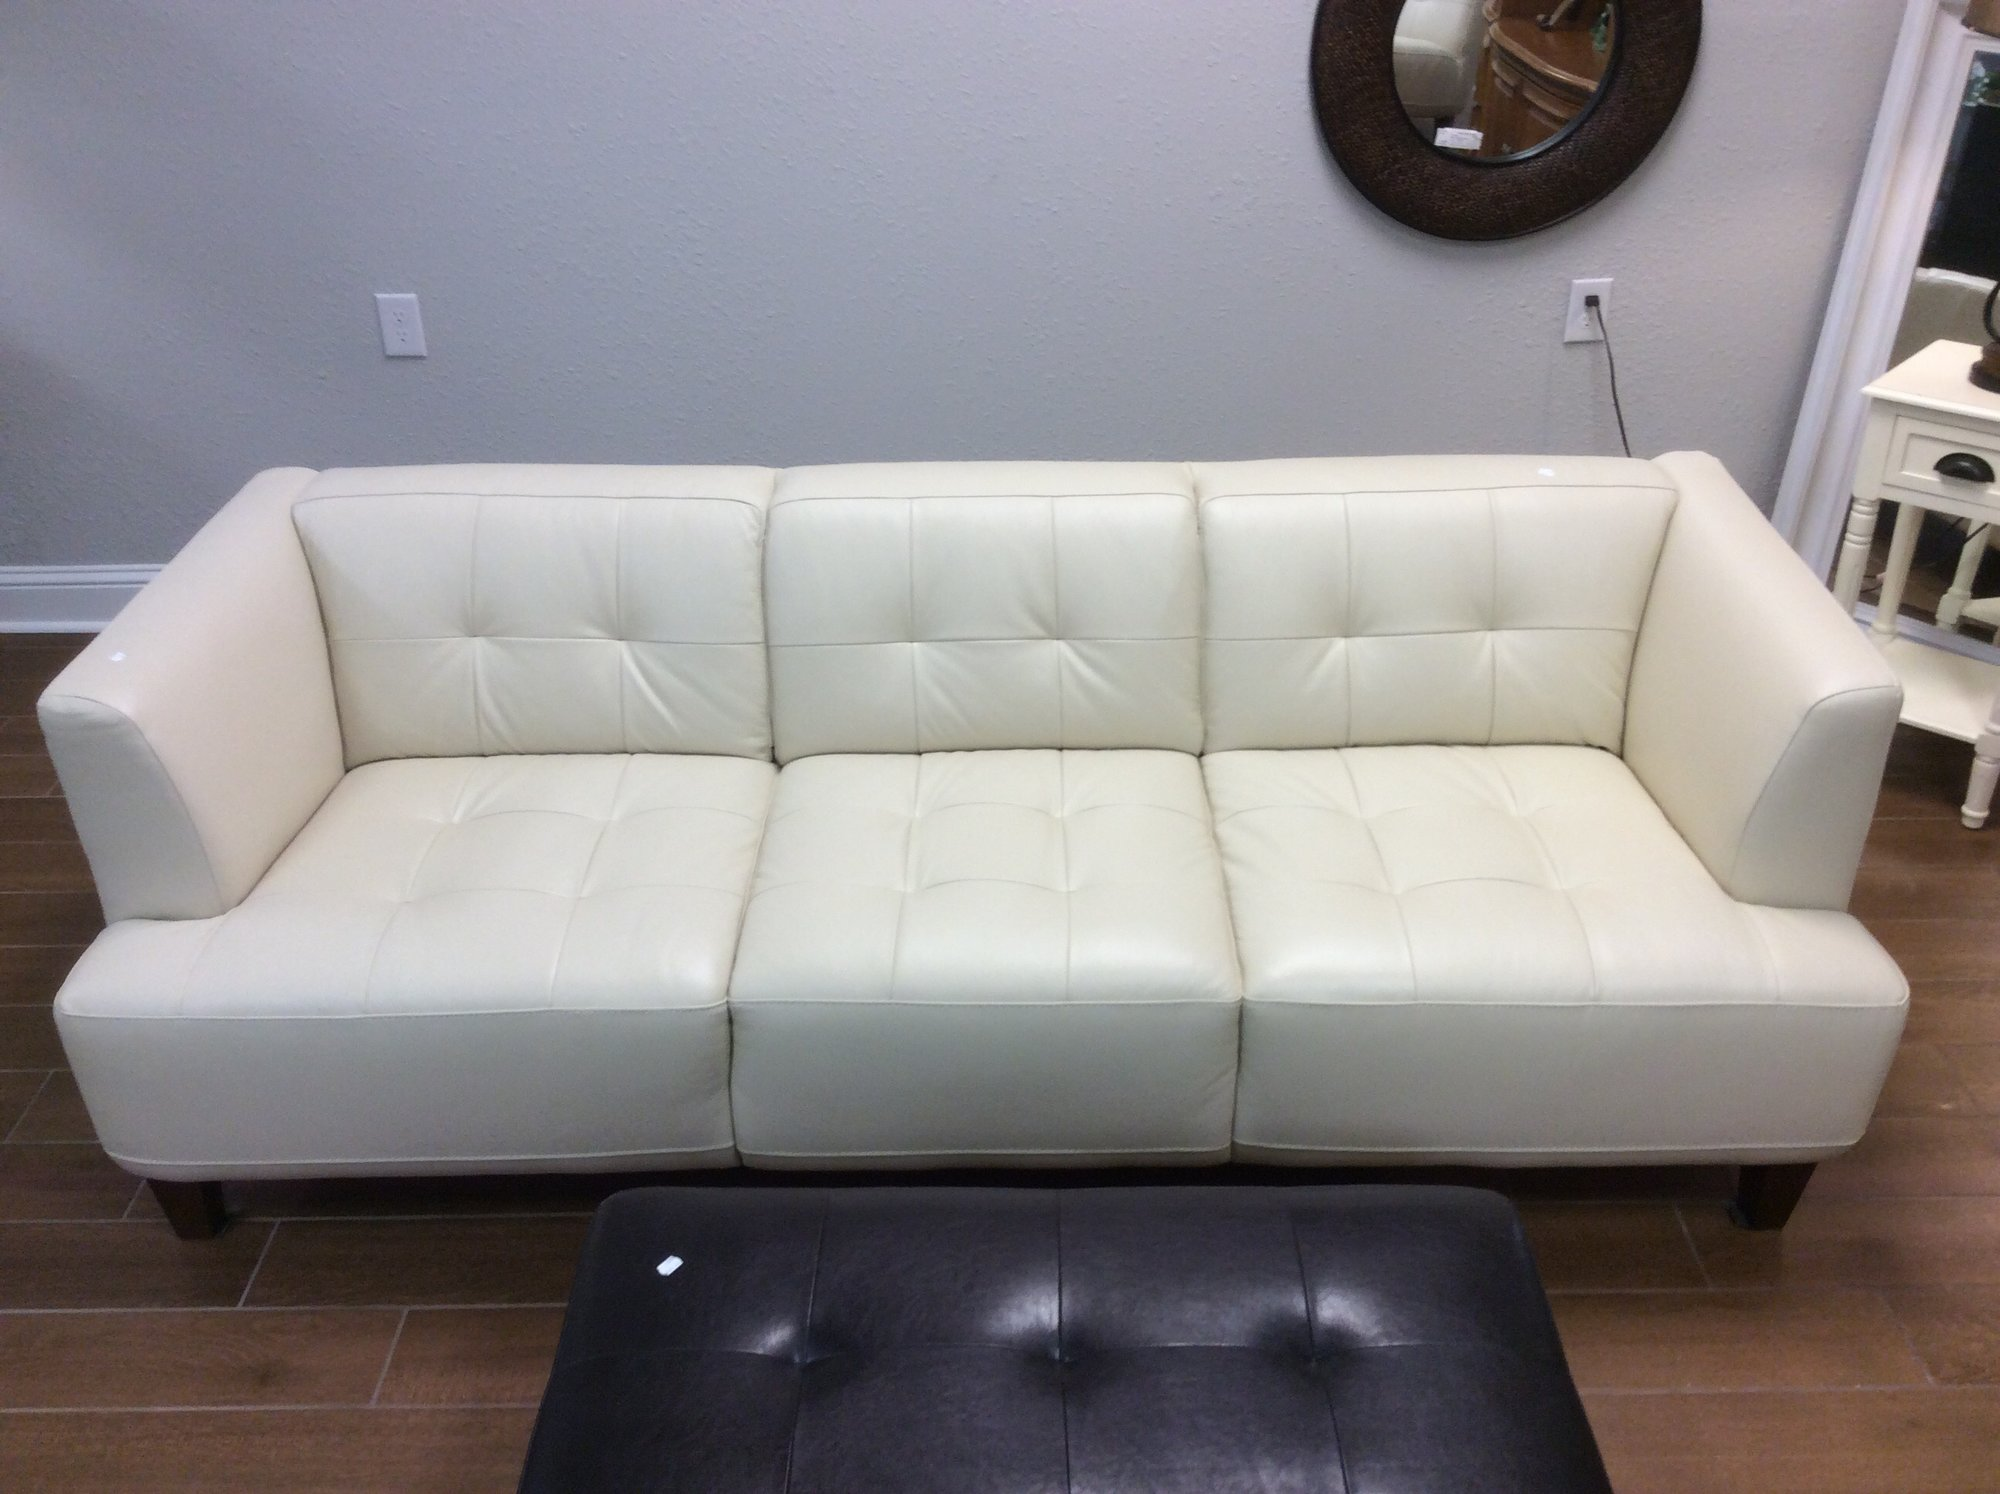 This elegant, tufted leather sofa is in excellent condition. The cream colored leather is incredibly soft and supple.<br /> None of the cushions are removable, so you&#039;ll never lose your change in this sofa! There is also a matching chaise lounge, that is available for purchase seperately